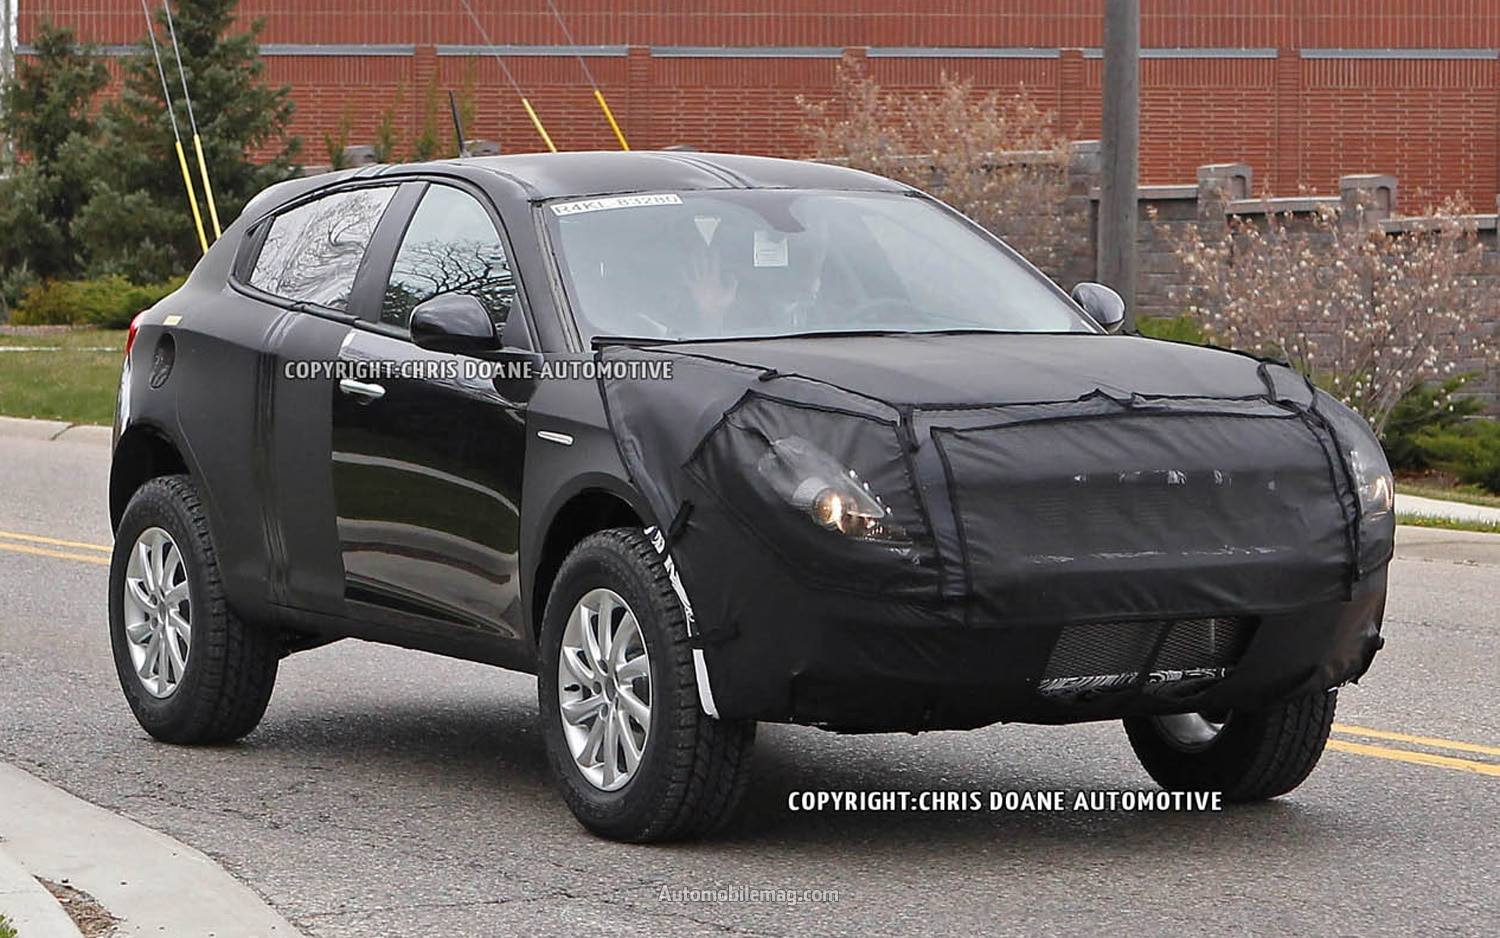 2014 Jeep Liberty Spied Front Three Quarter 21